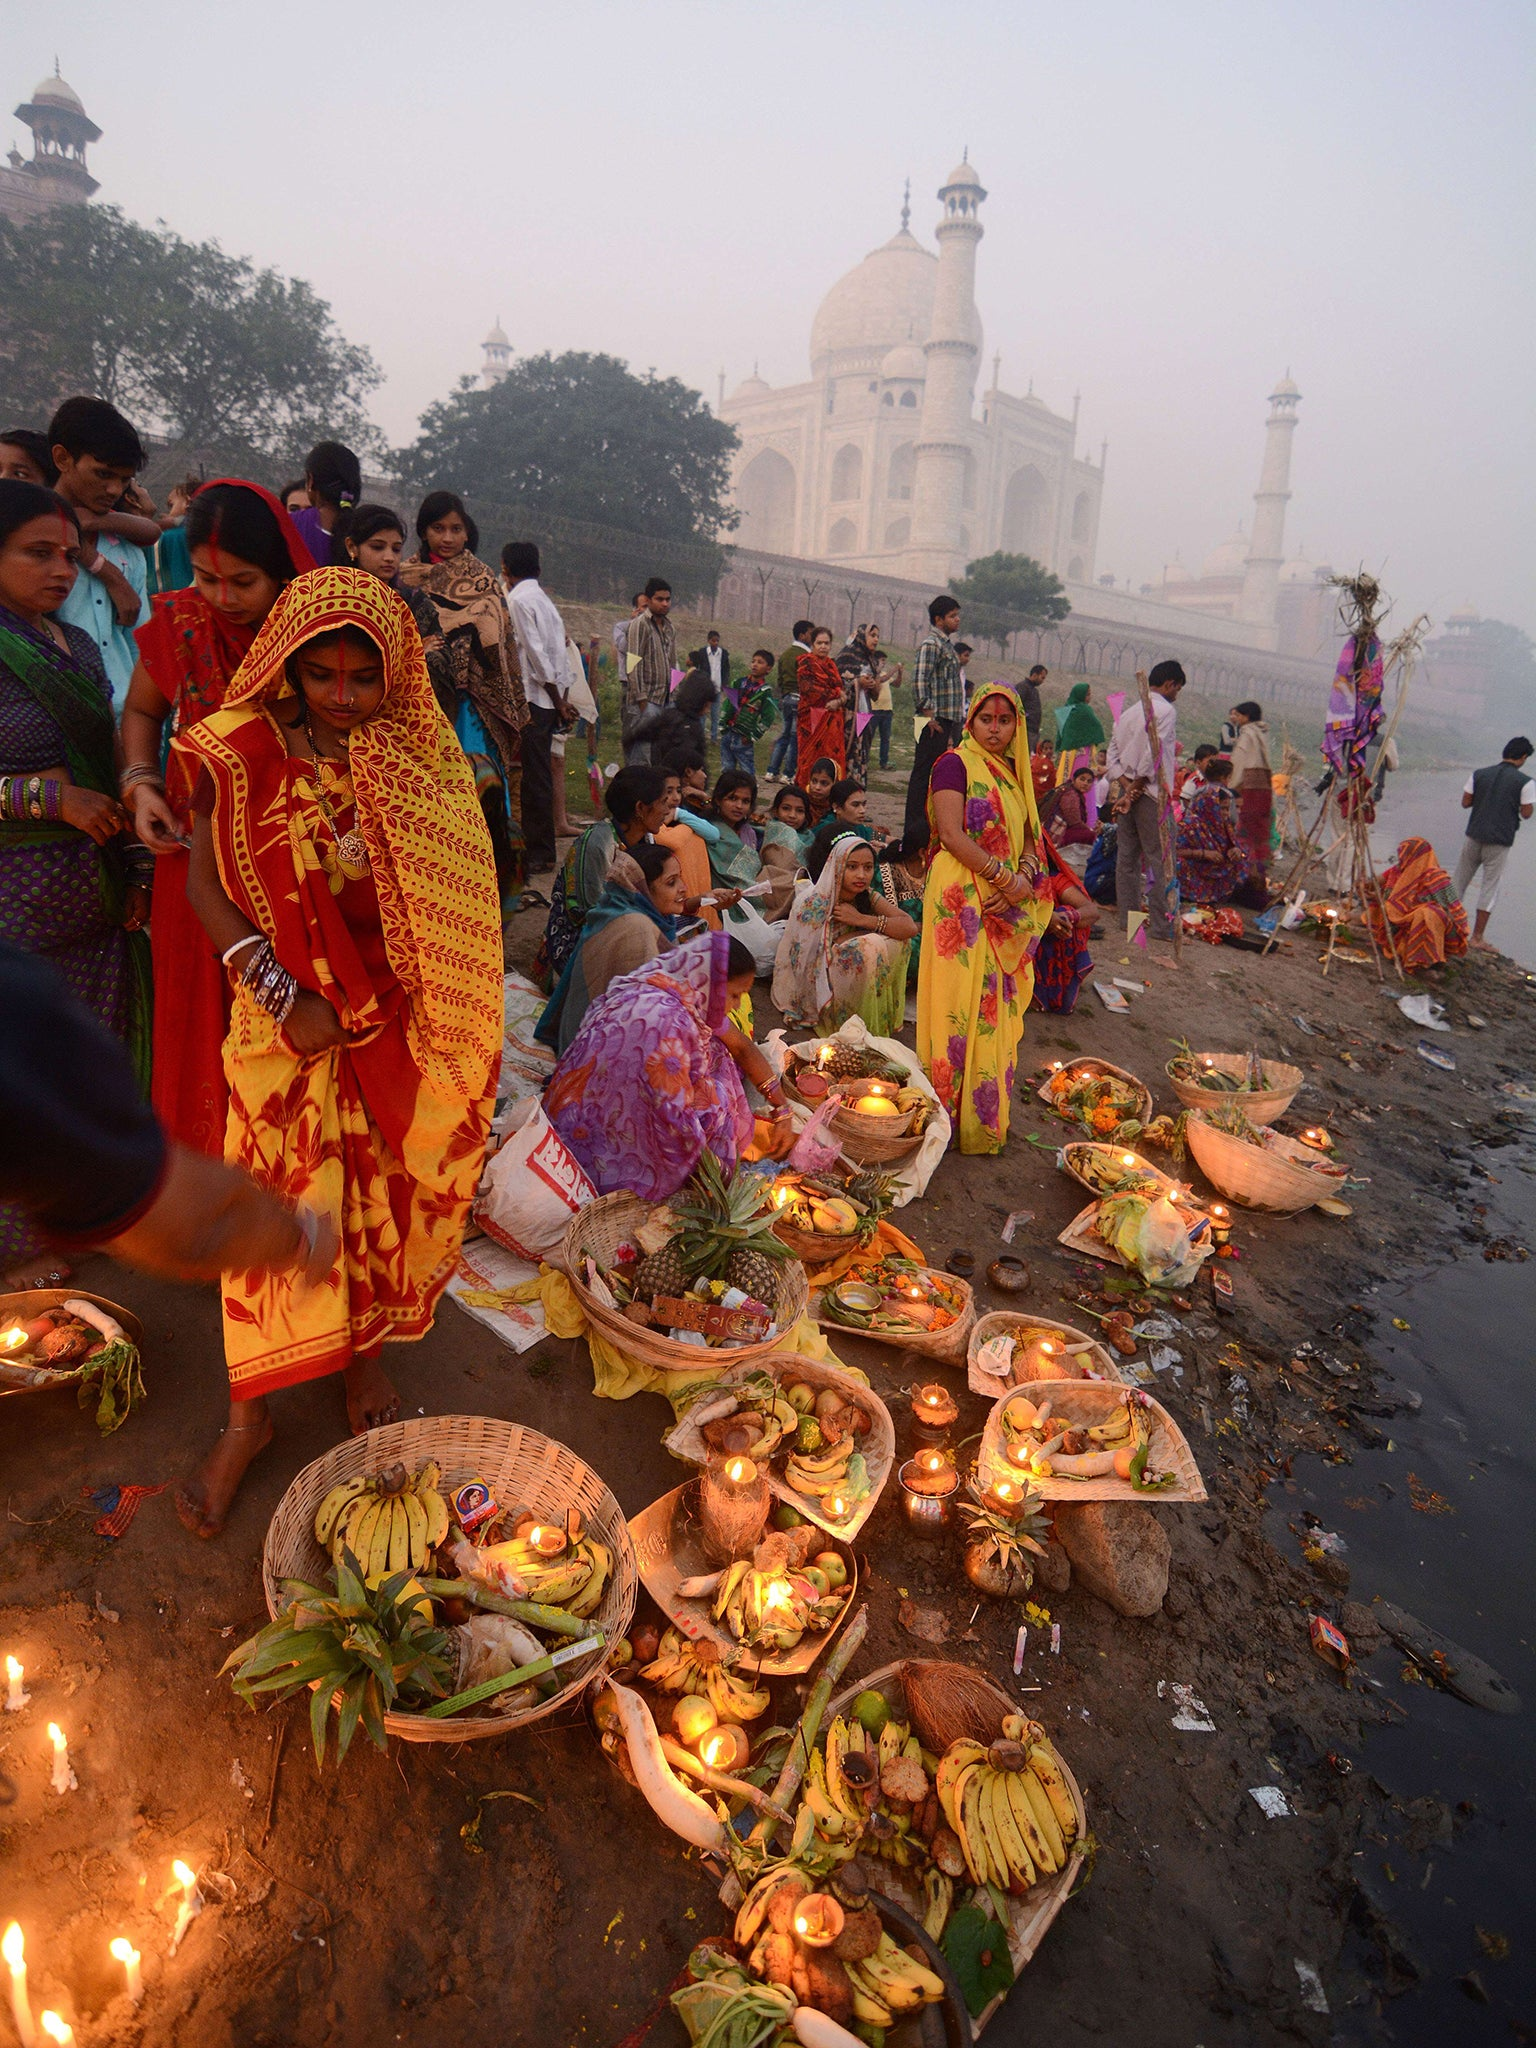 Things on Puja: the secret of popularity